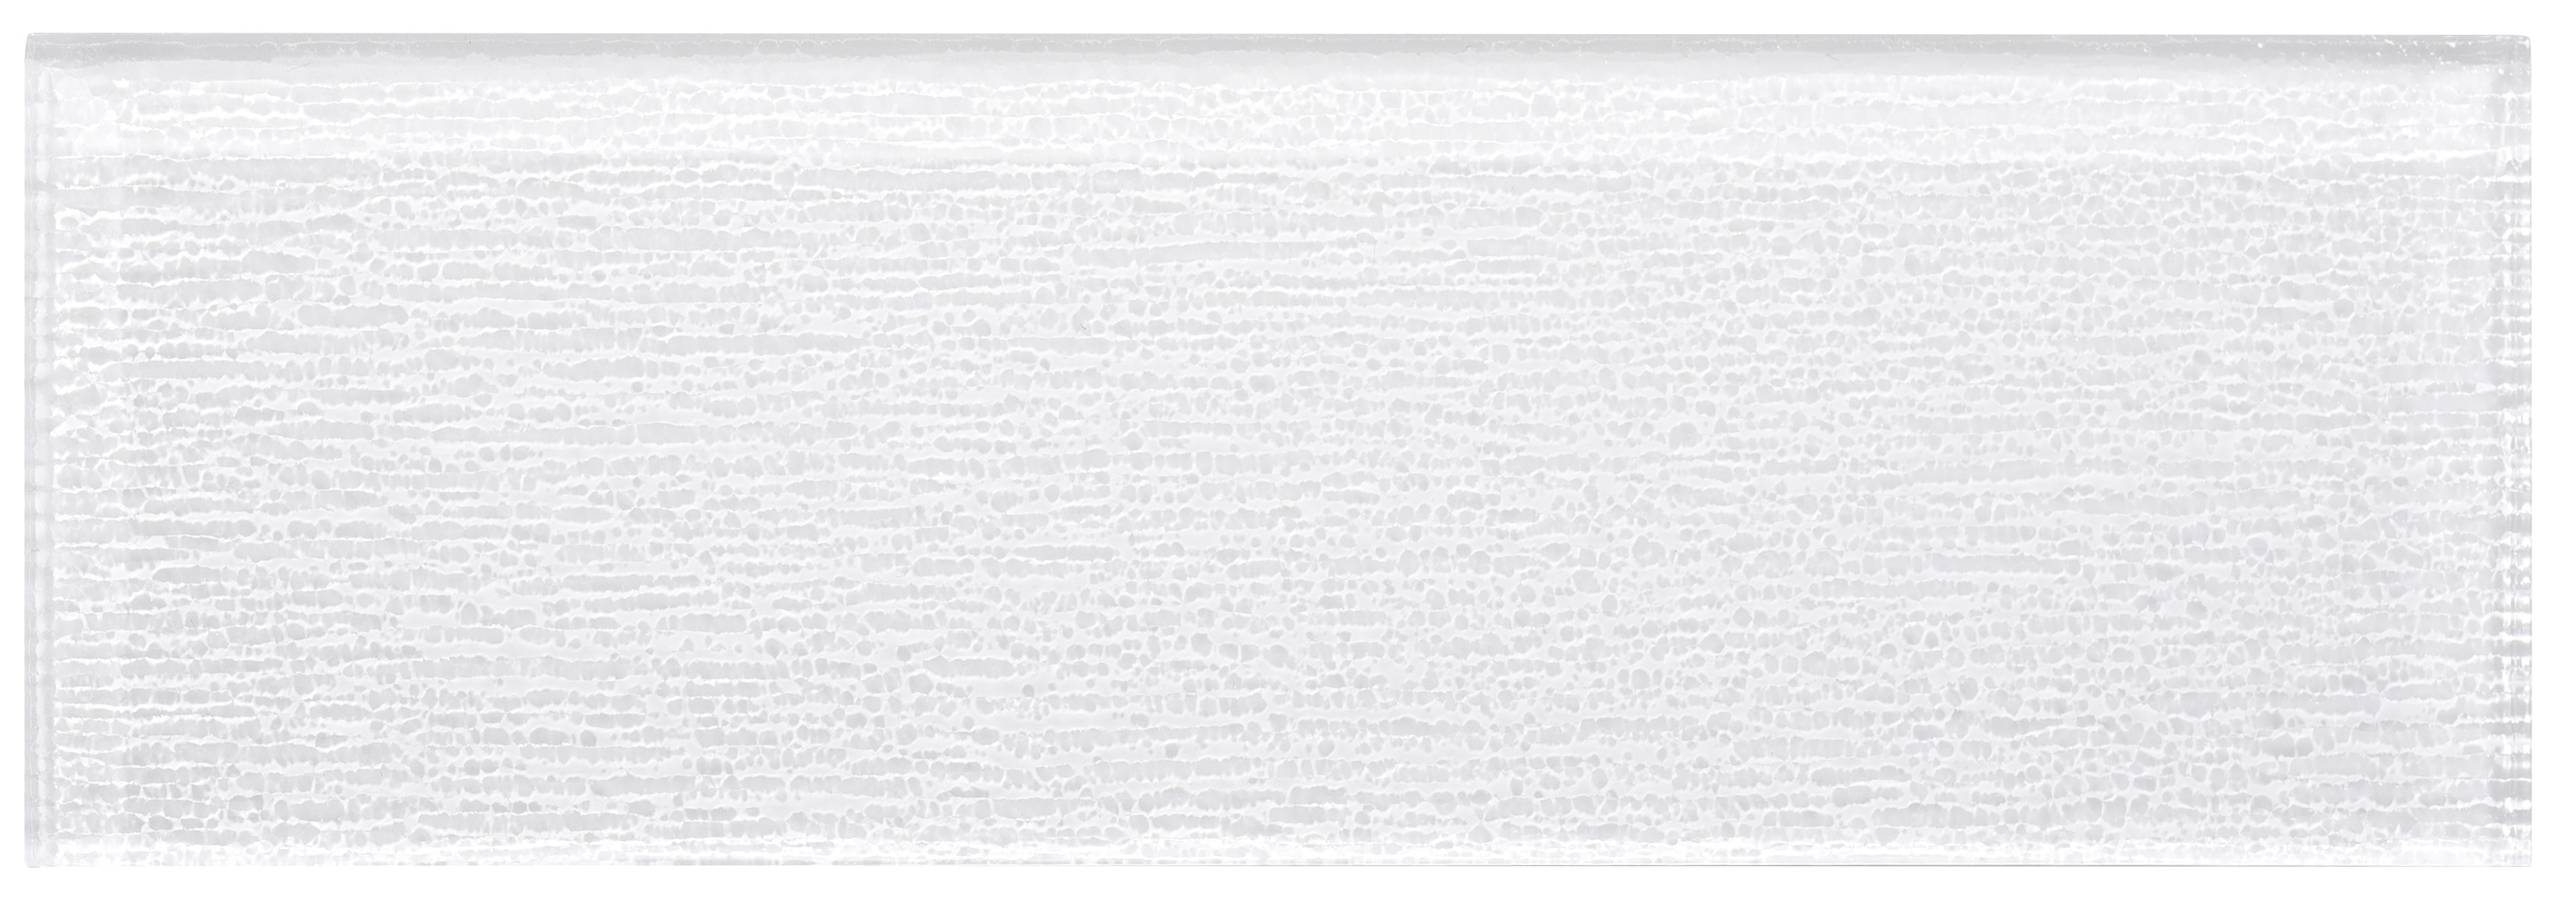 """Glass Subway Tile / 4 x 12 x 0.31 inches / Glossy Textured Individual 4"""" X 12"""" Glass Subway Tile In White 0"""